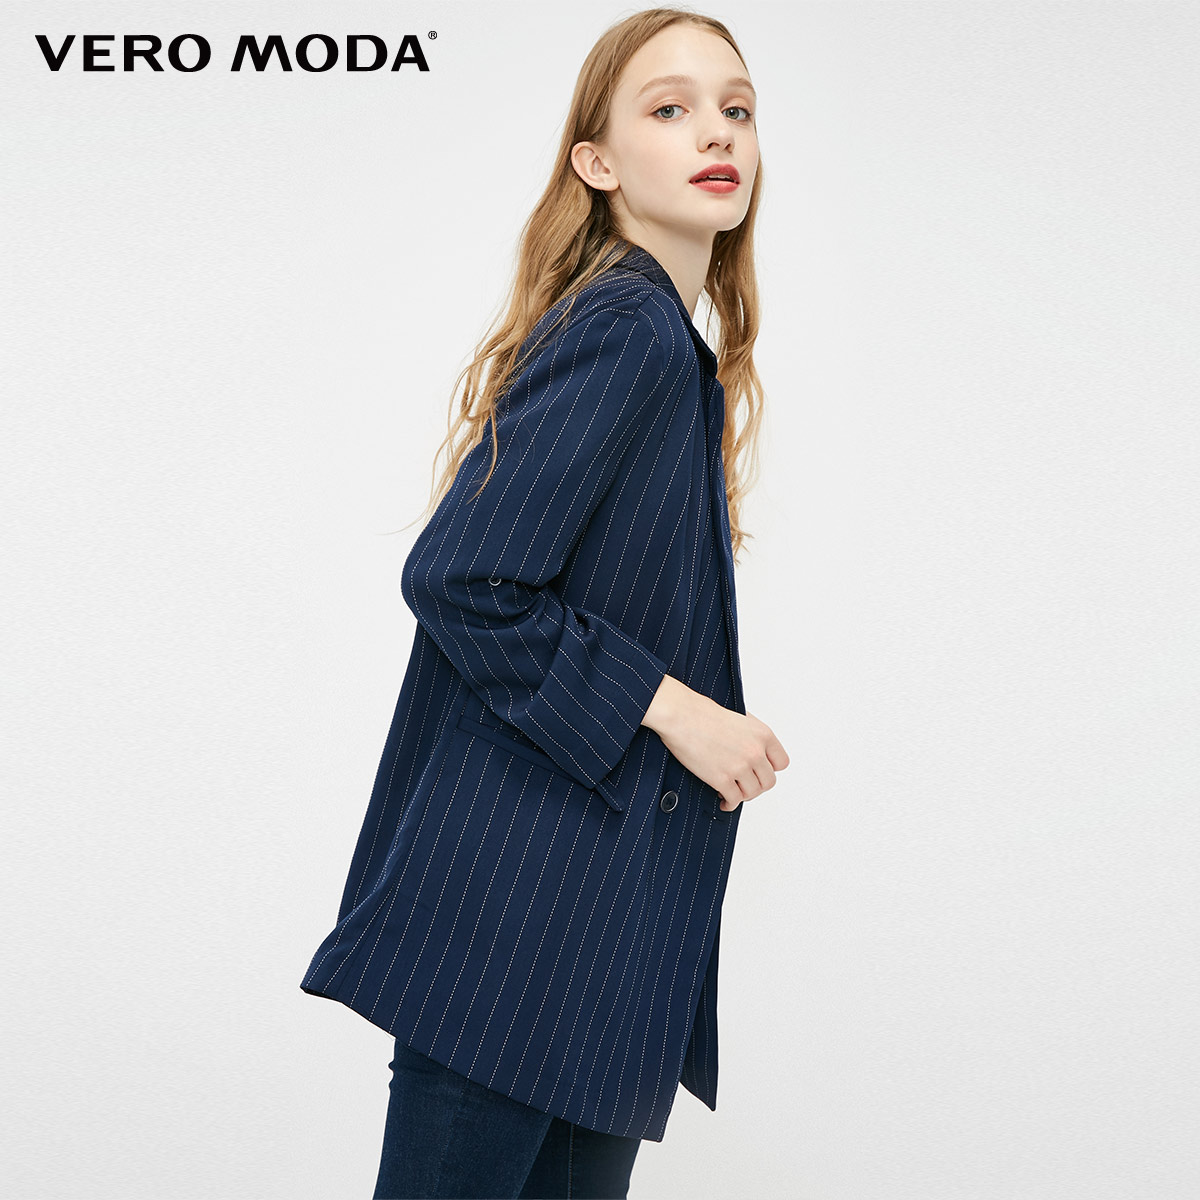 Vero Moda 2019 New Women's Double-breasted Thin Blazer | 319108503